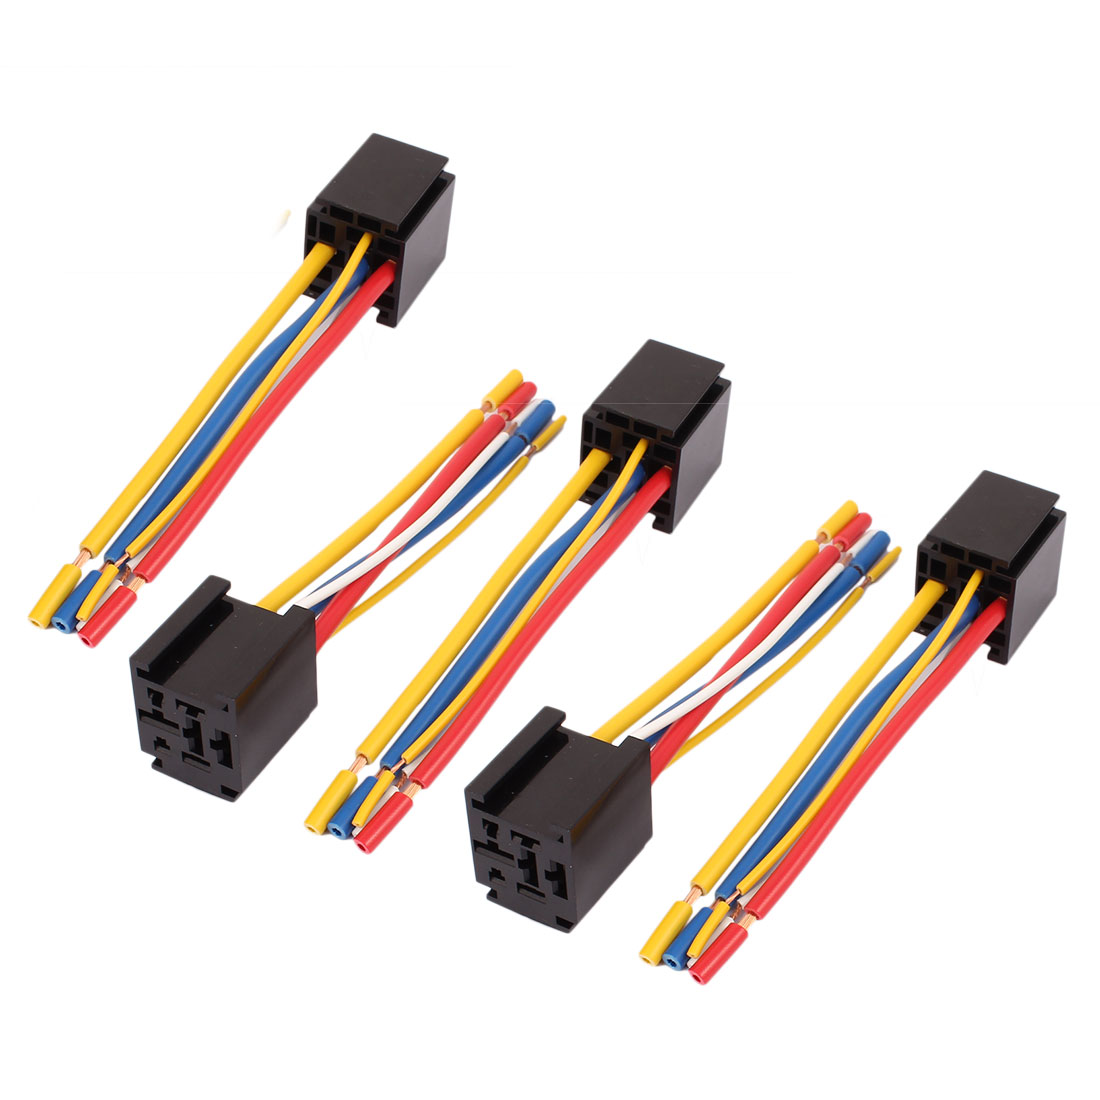 DC 12V/24V 80A 5-Pin Wire Relay Socket Harness Connector 5pcs for Car Truck